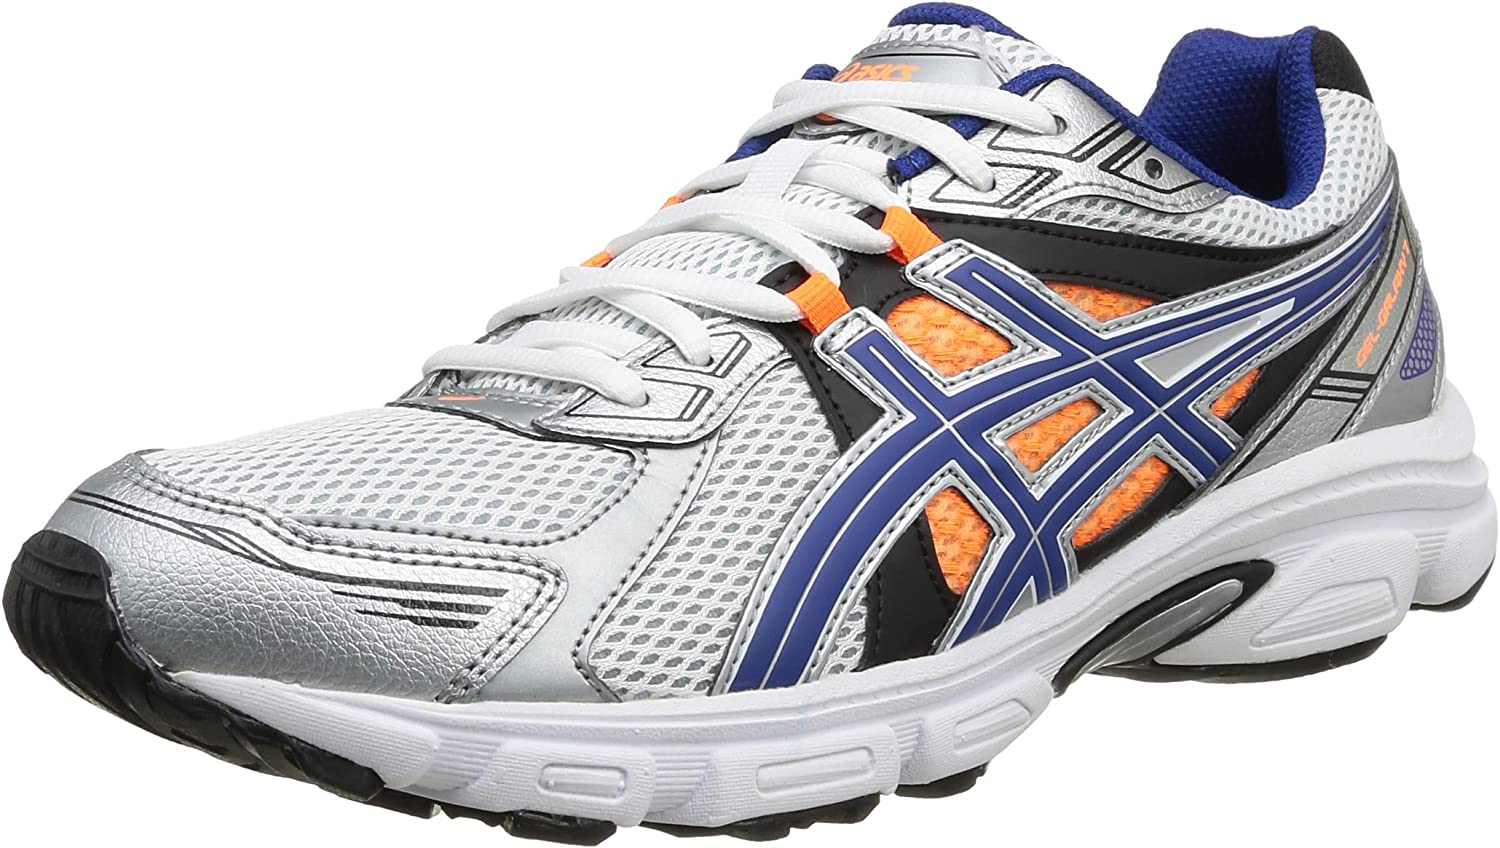 Asics Gel Galaxy 7 - Zapatillas de Running para Hombre, Color Wht/Blue/FL.Oran, Talla 40.5: Amazon.es: Zapatos y complementos